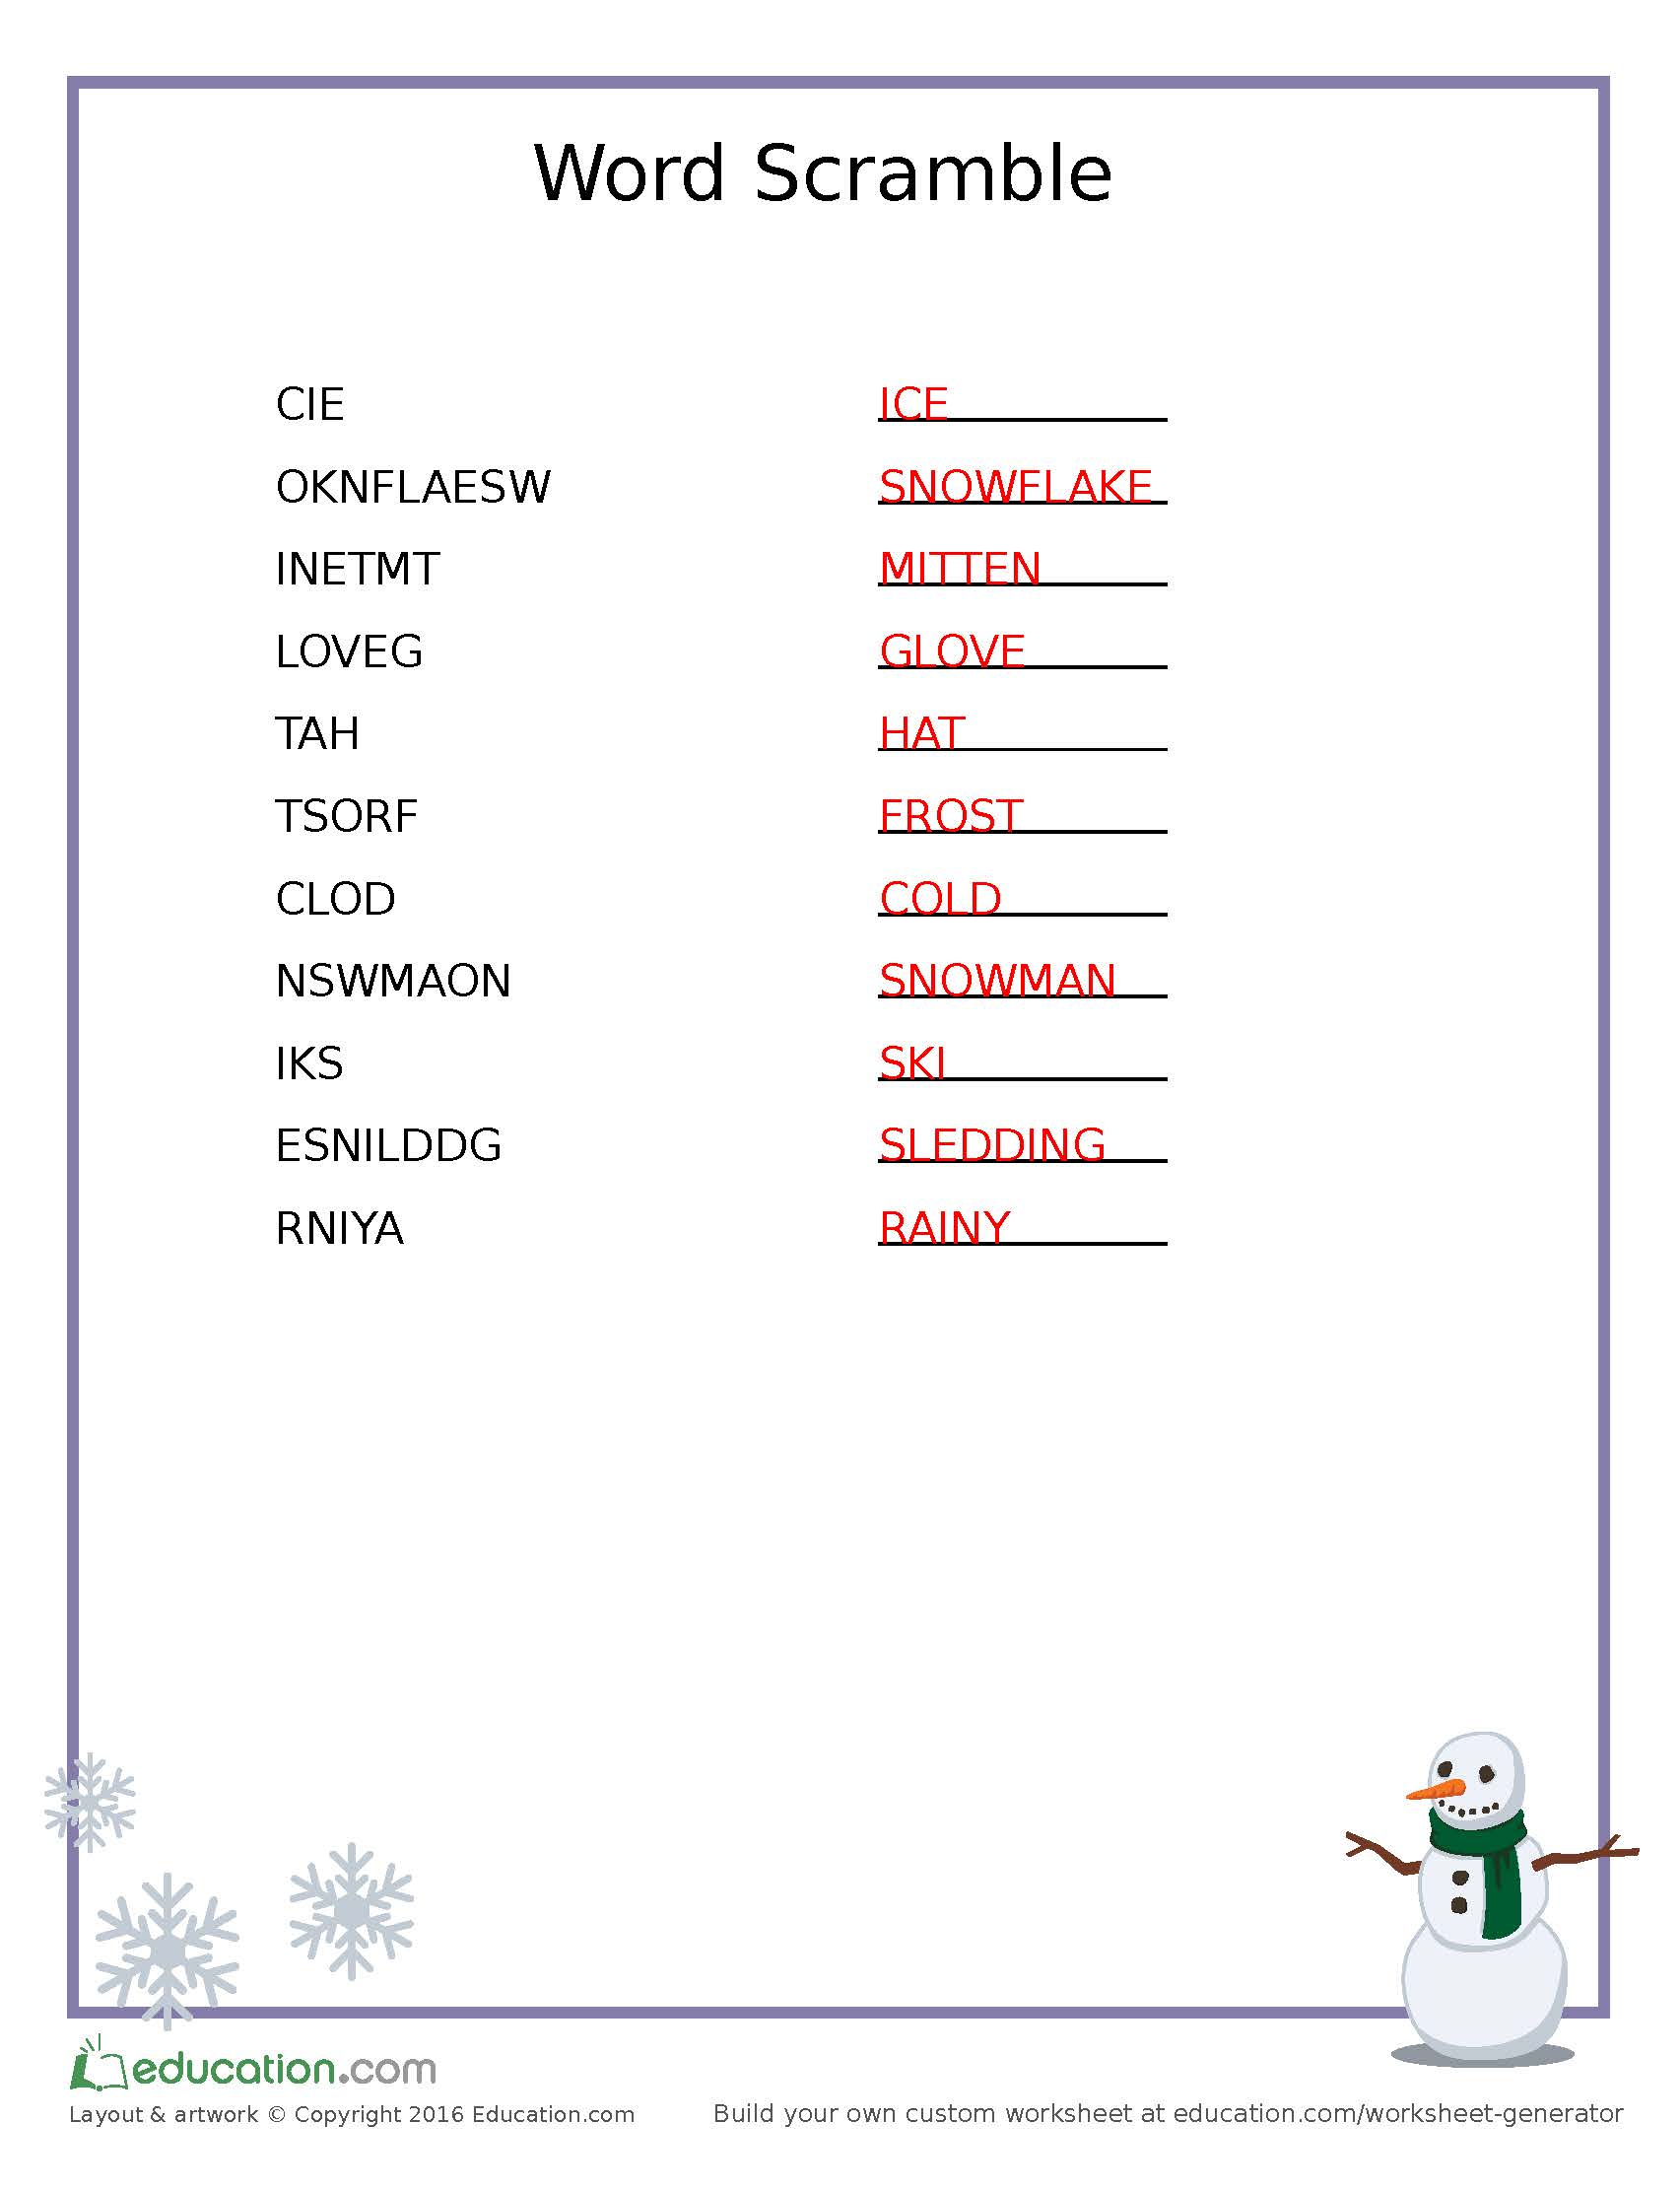 Word Scramble Snowman Answers The Dad Website